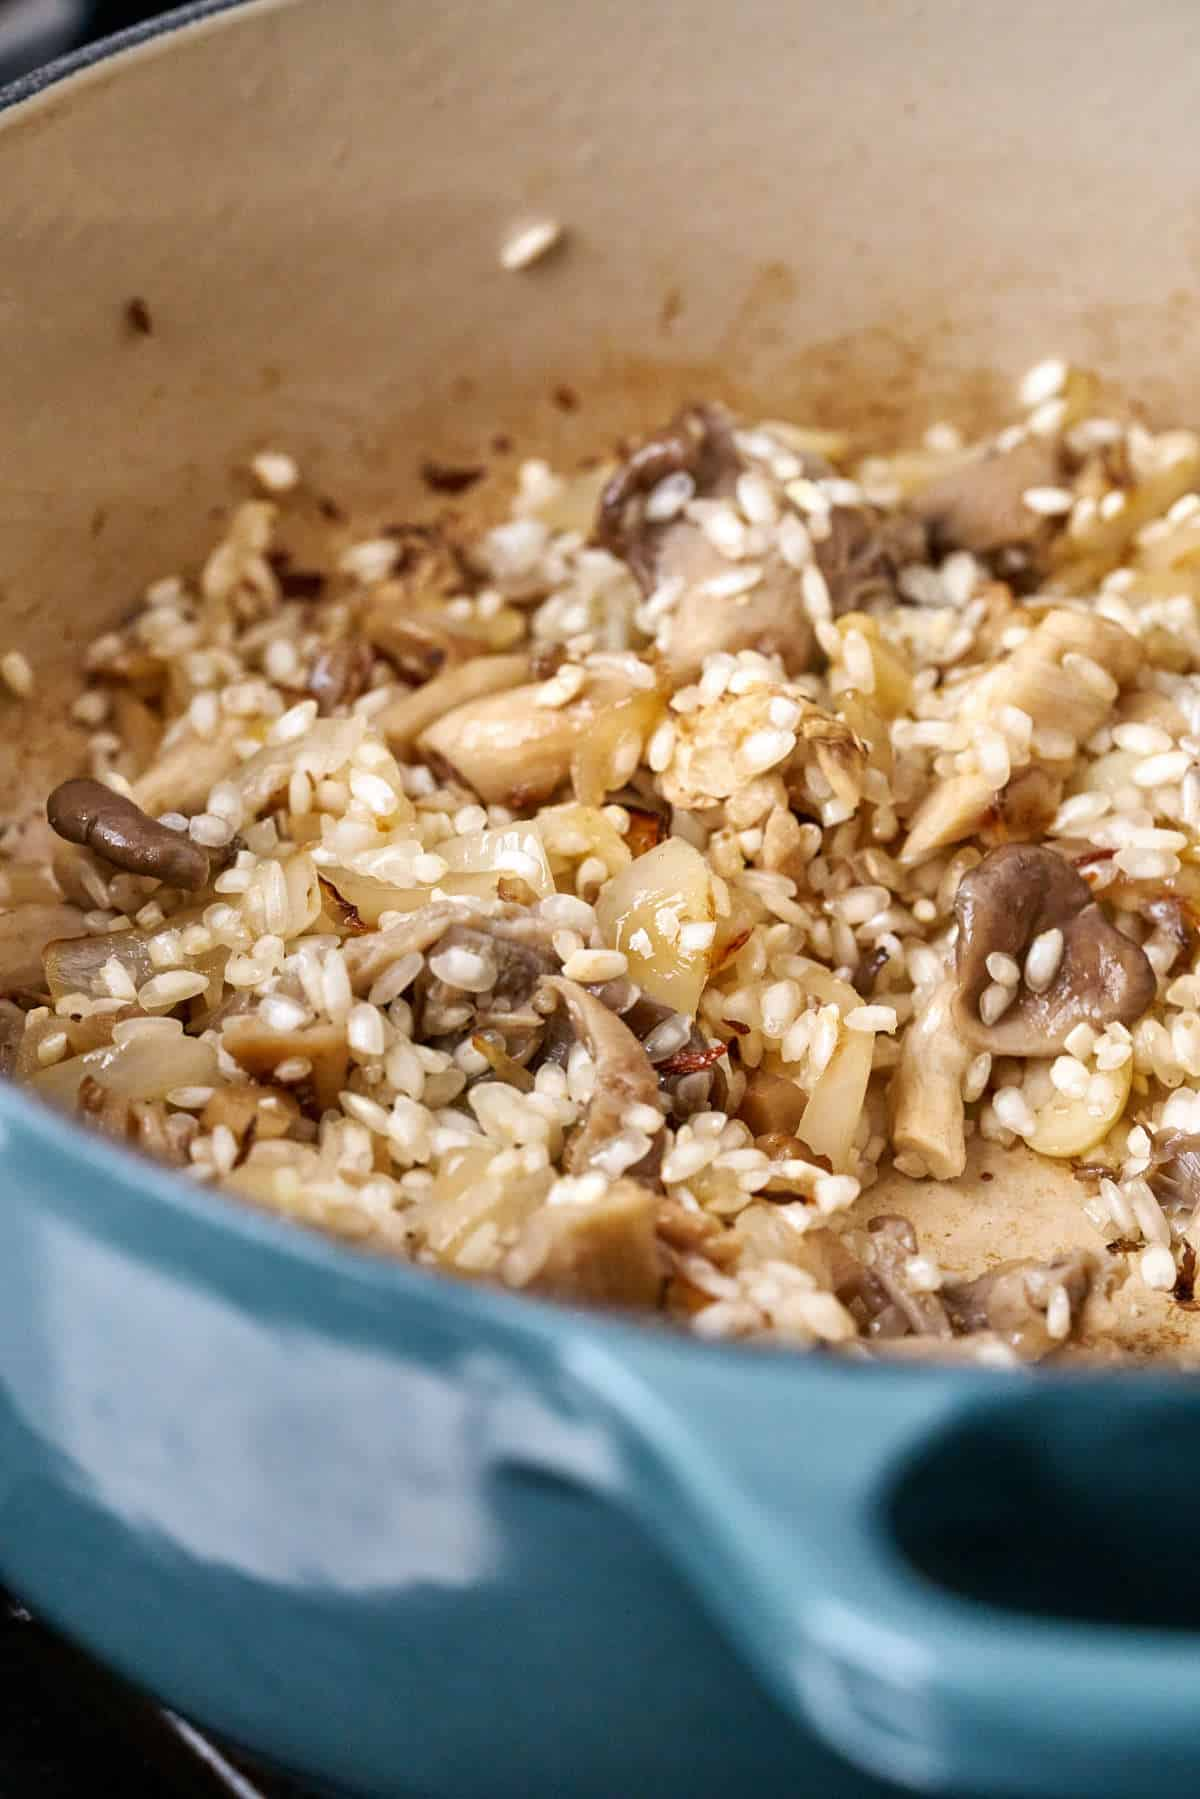 Rice and mushrooms in a pot.